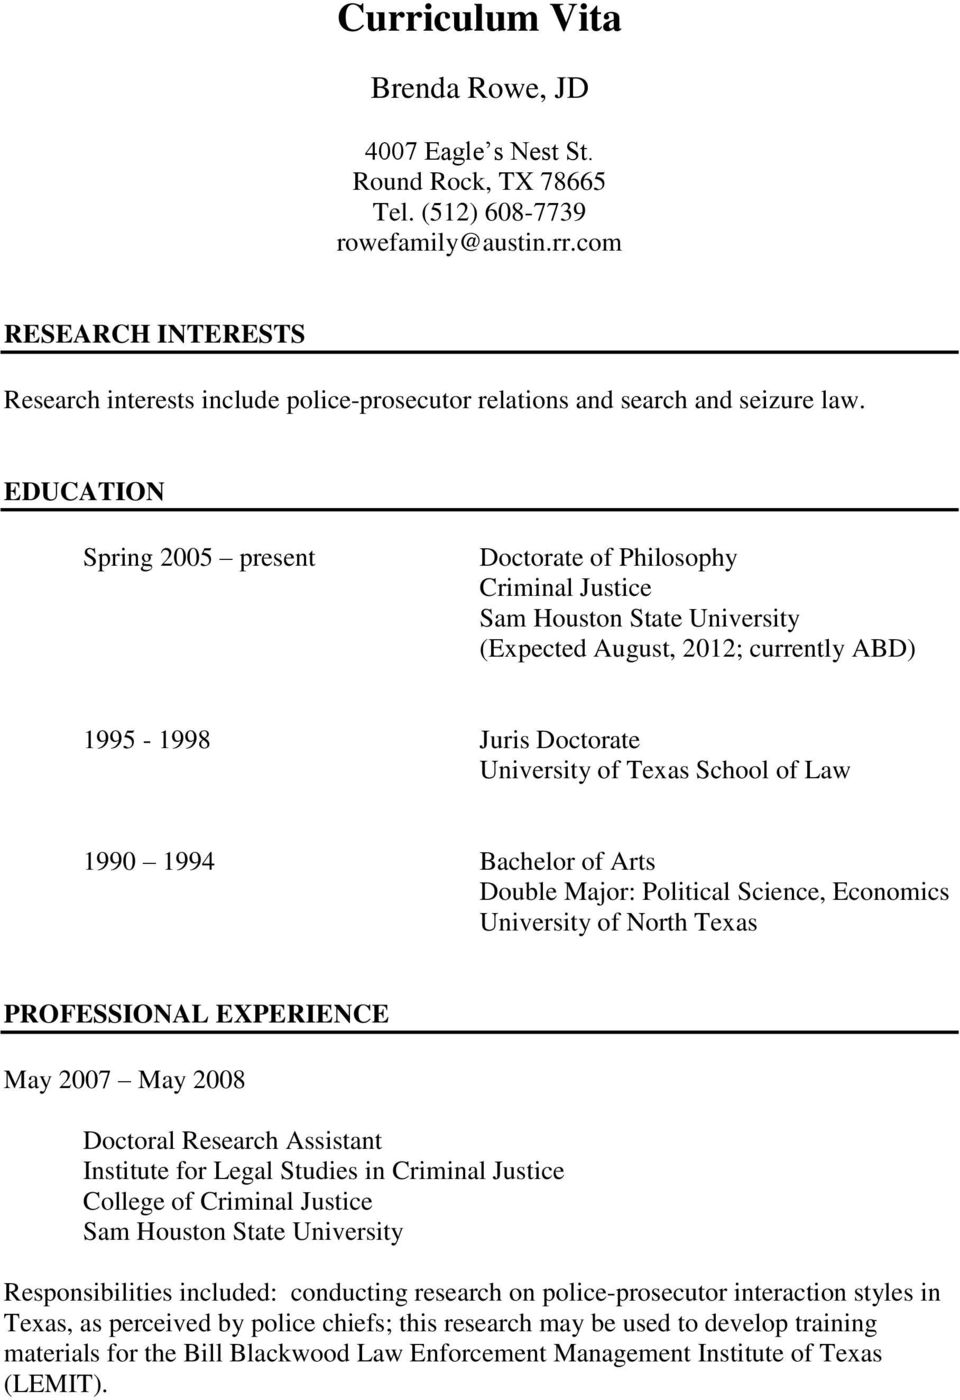 Arts Double Major: Political Science, Economics of North Texas PROFESSIONAL EXPERIENCE May 2007 May 2008 Doctoral Research Assistant Institute for Legal Studies in Criminal Justice Sam Houston State